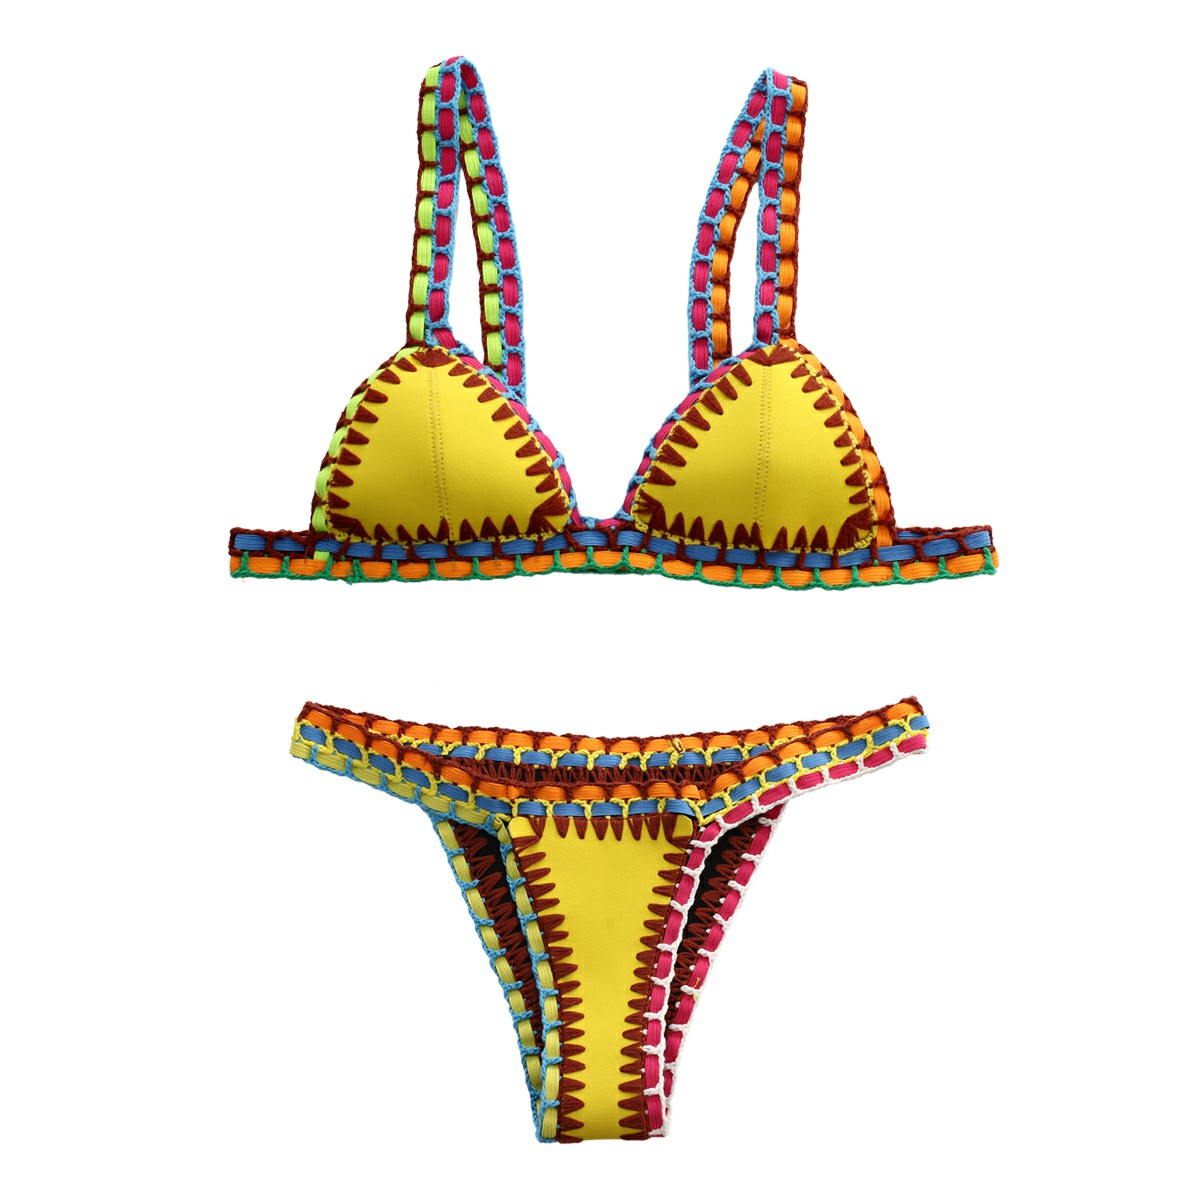 2pcs Women Sexy Handmade Crochet Halter Knit Bikini Swimsuit Set Size M - Yellow